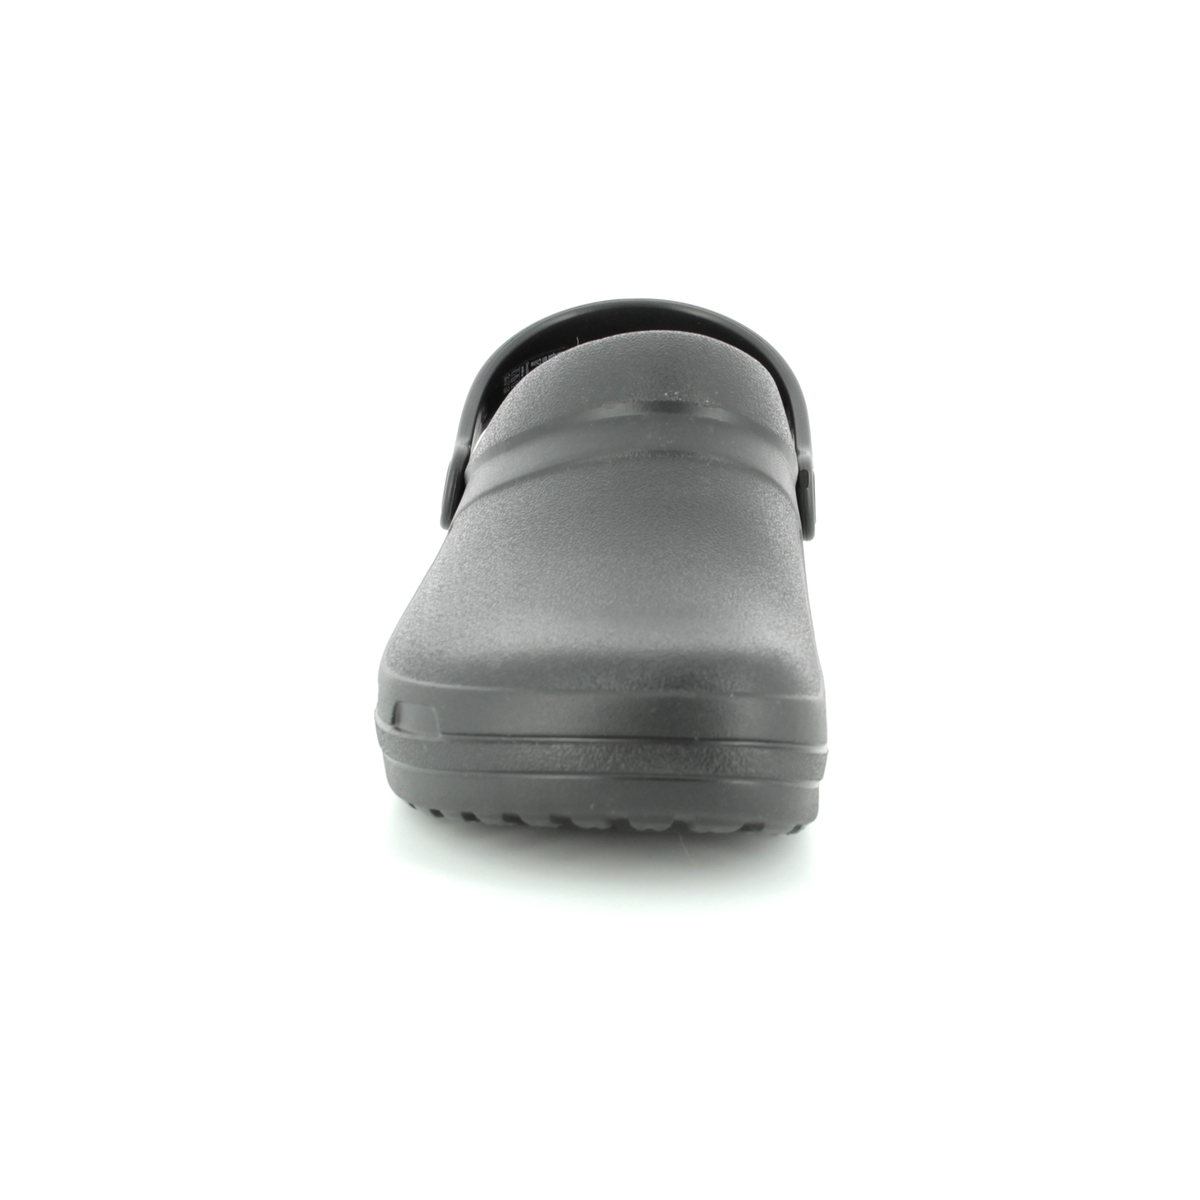 26b152abaee4d Crocs Mens   Womens - Black - 204590 001 SPECIALIST 2